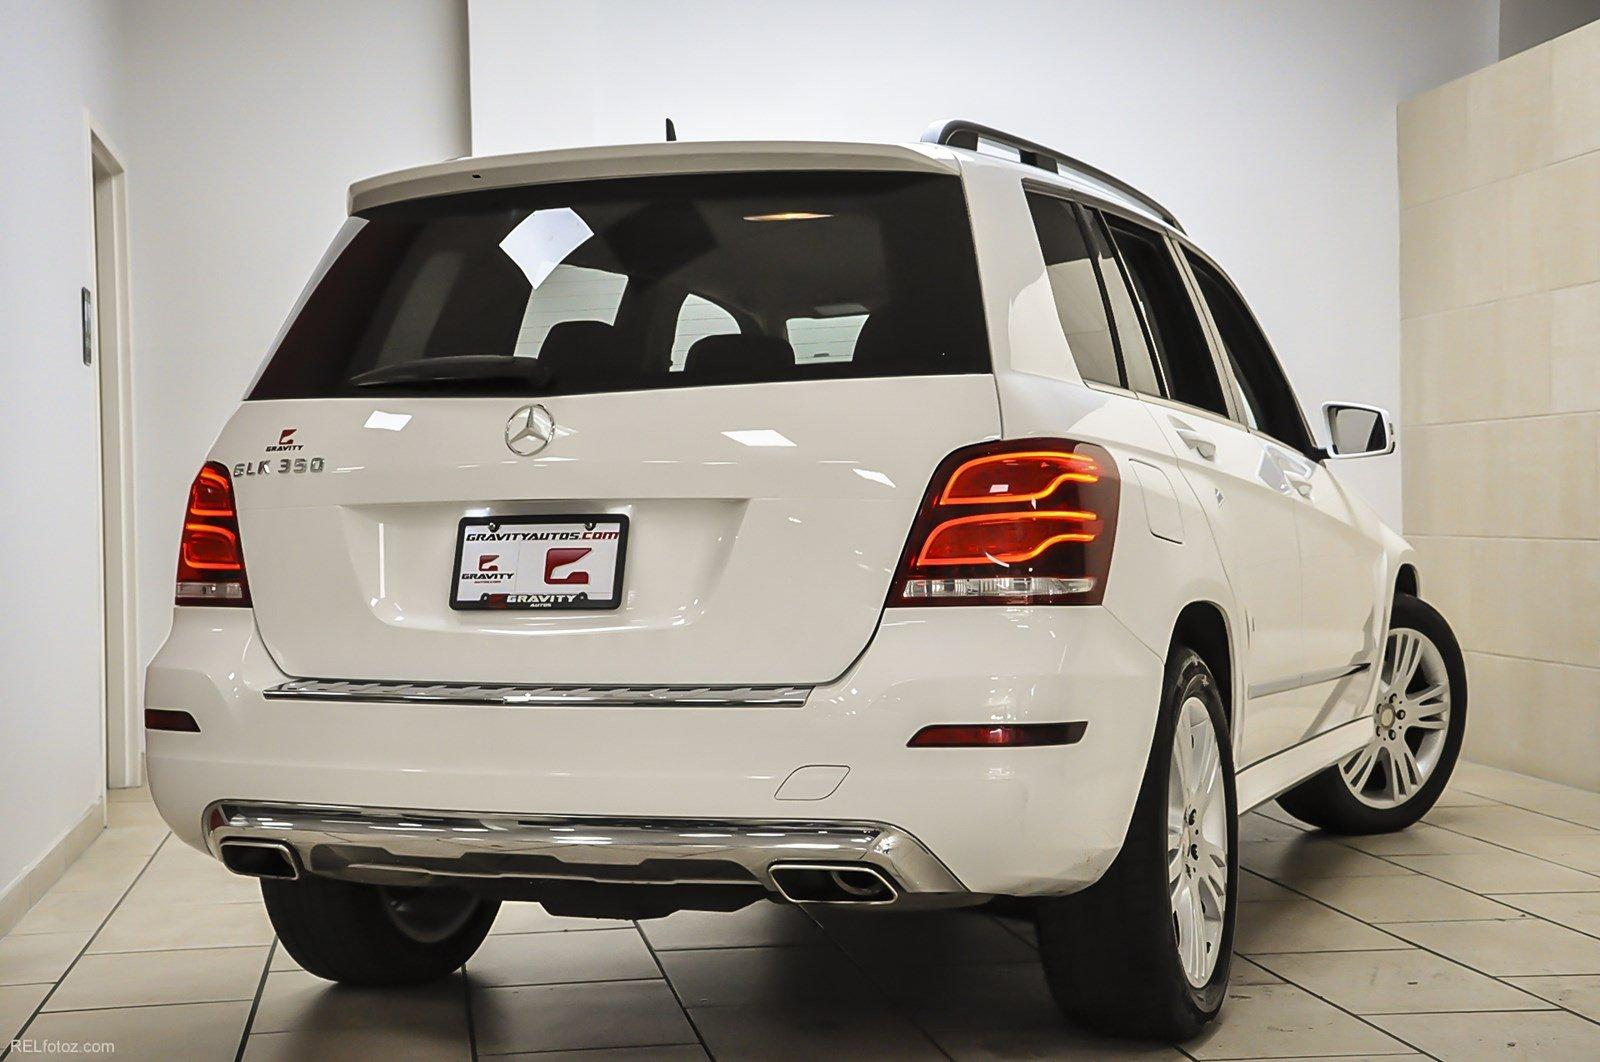 2015 mercedes benz glk class glk 350 stock 441033 for for Mercedes benz sandy springs